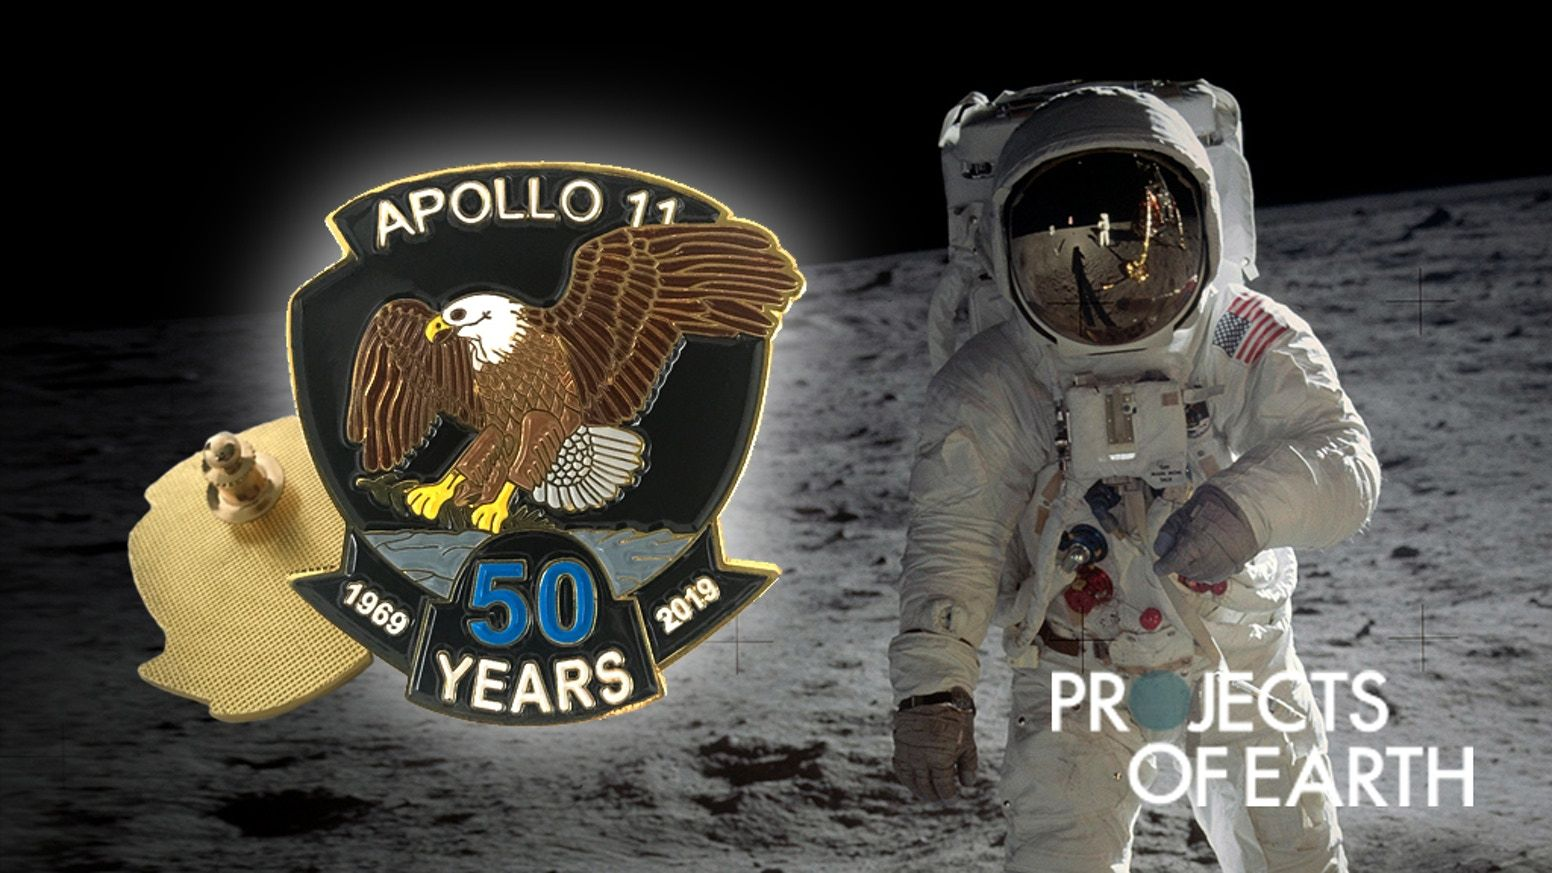 Apollo 11 50th anniversary pin moon dust buzz aldrin neil armstrong nasa space meteorite kickstarter